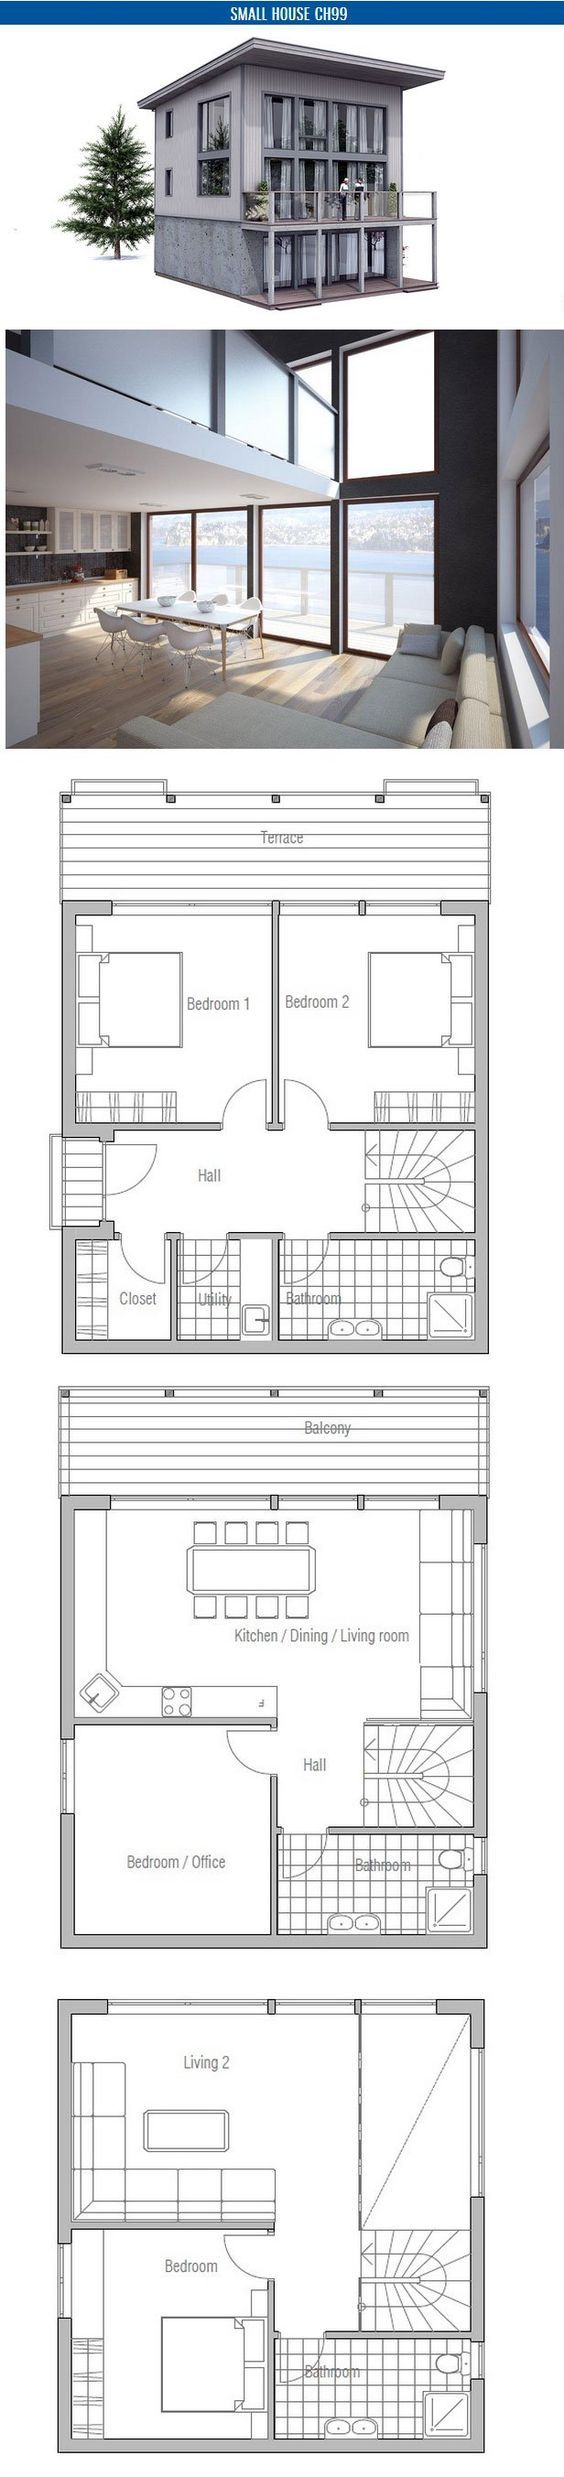 Small house plan with four bedrooms Simple